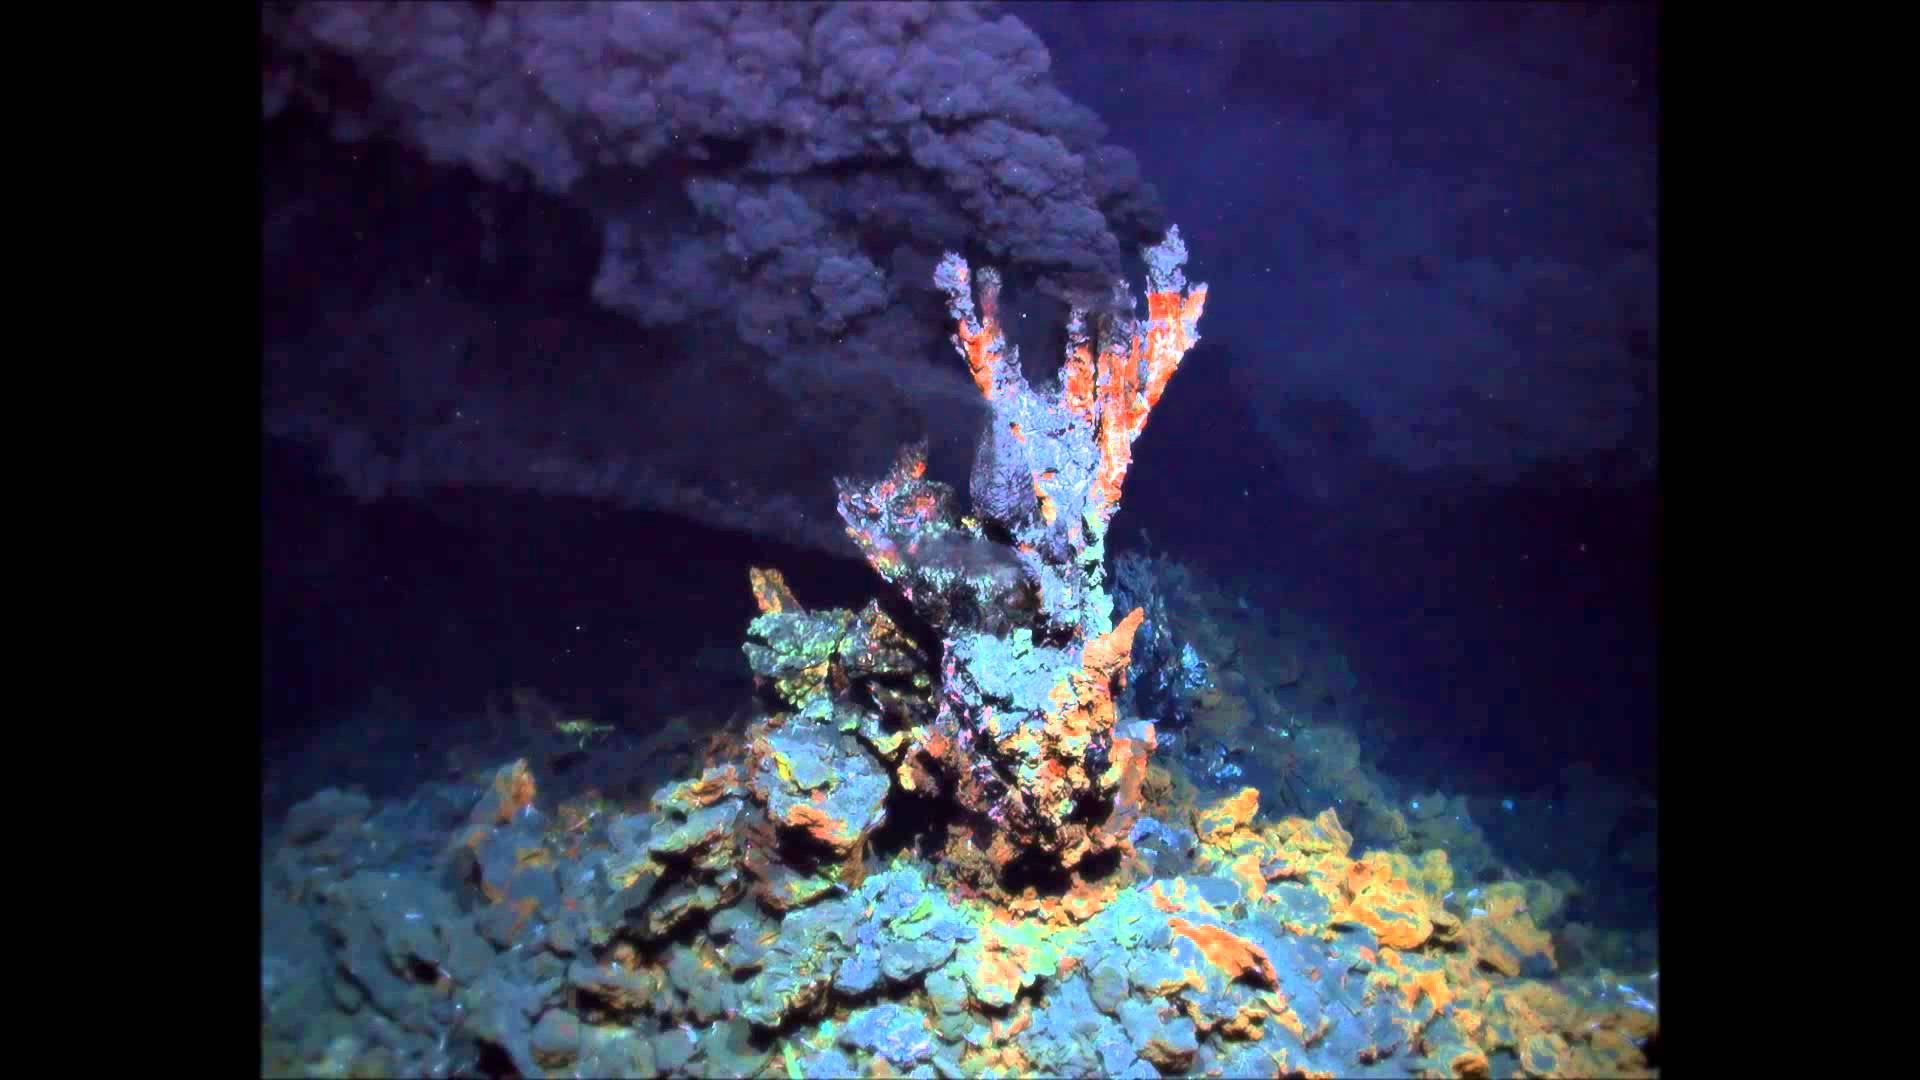 origin of life theory deep sea vents 7 theories on the origin of life deep-sea vents: some people believe life began in the , they don't have a conclusive theory on the origin of.